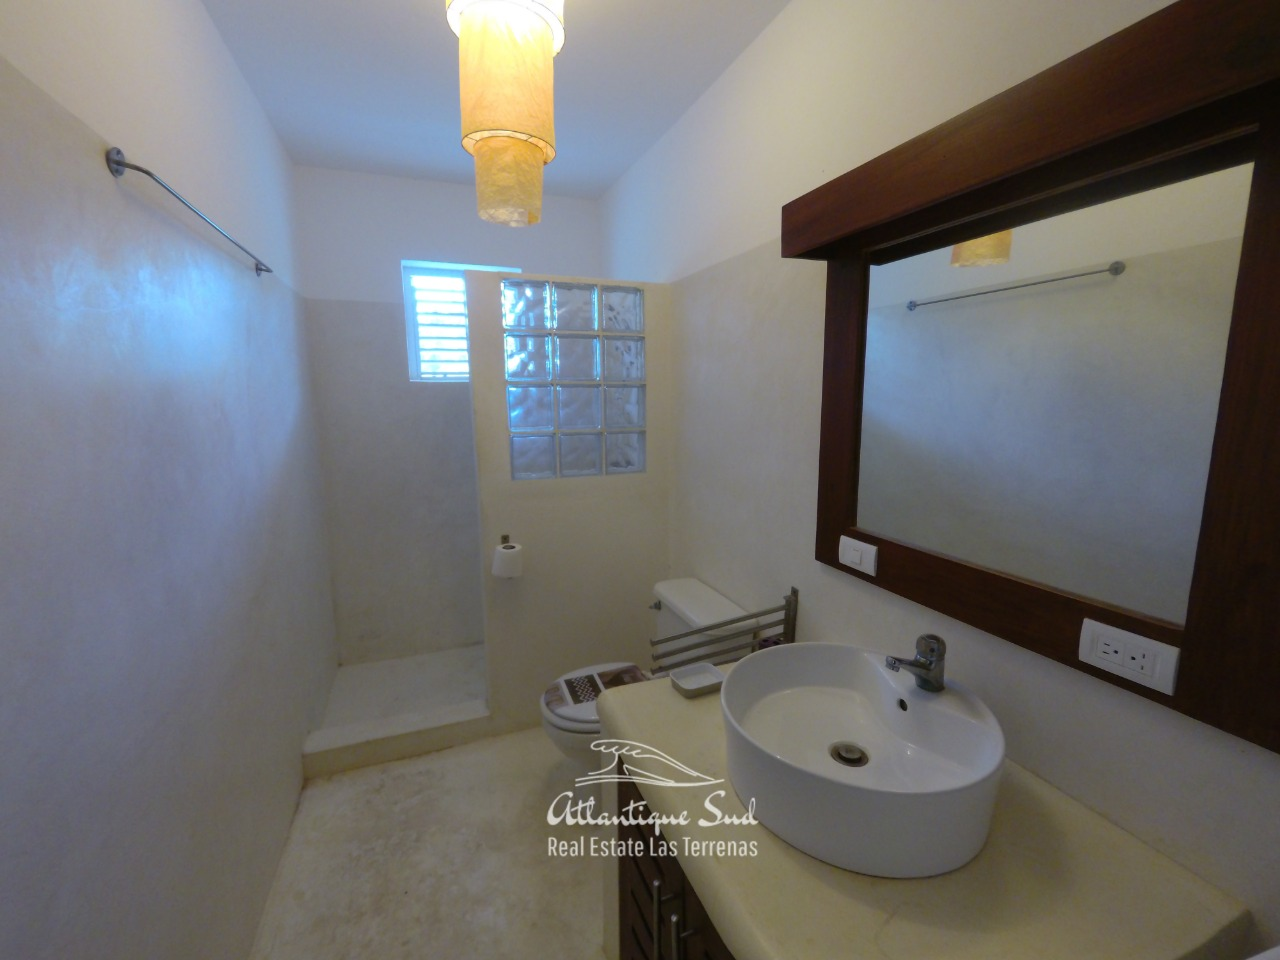 Villa for sale steps from the beach in las terrenas 13.jpeg